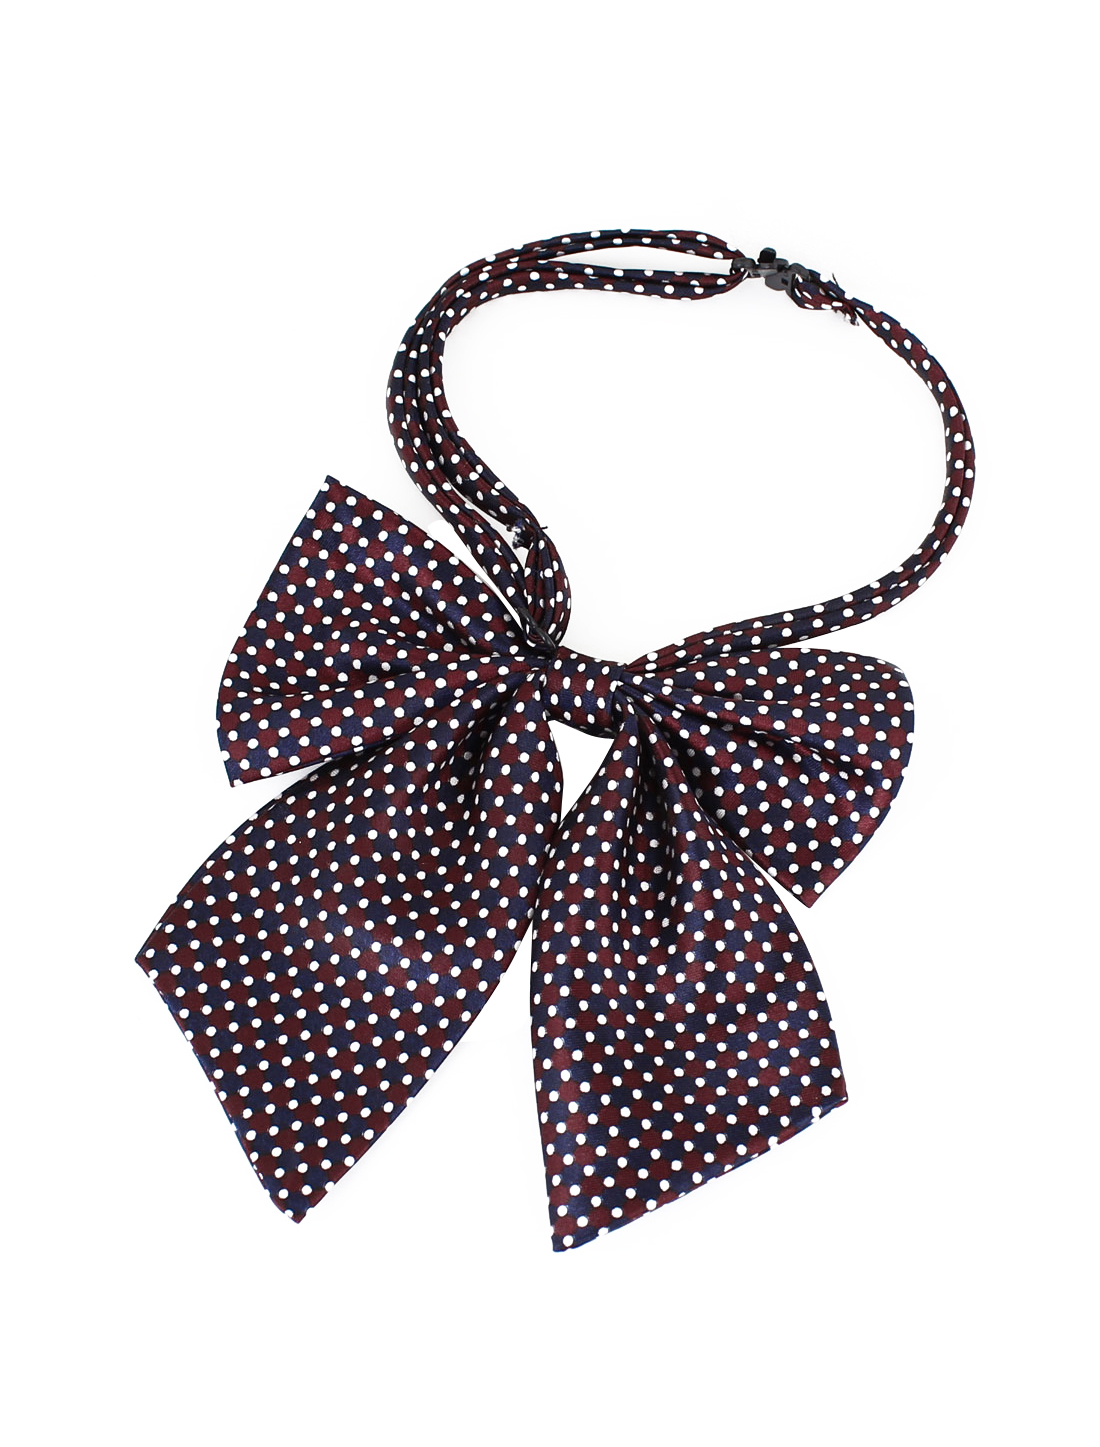 2 Pcs Men Ladies White Mini Dots Printed Red Blue Pre-Tied Bowknot Bowtie